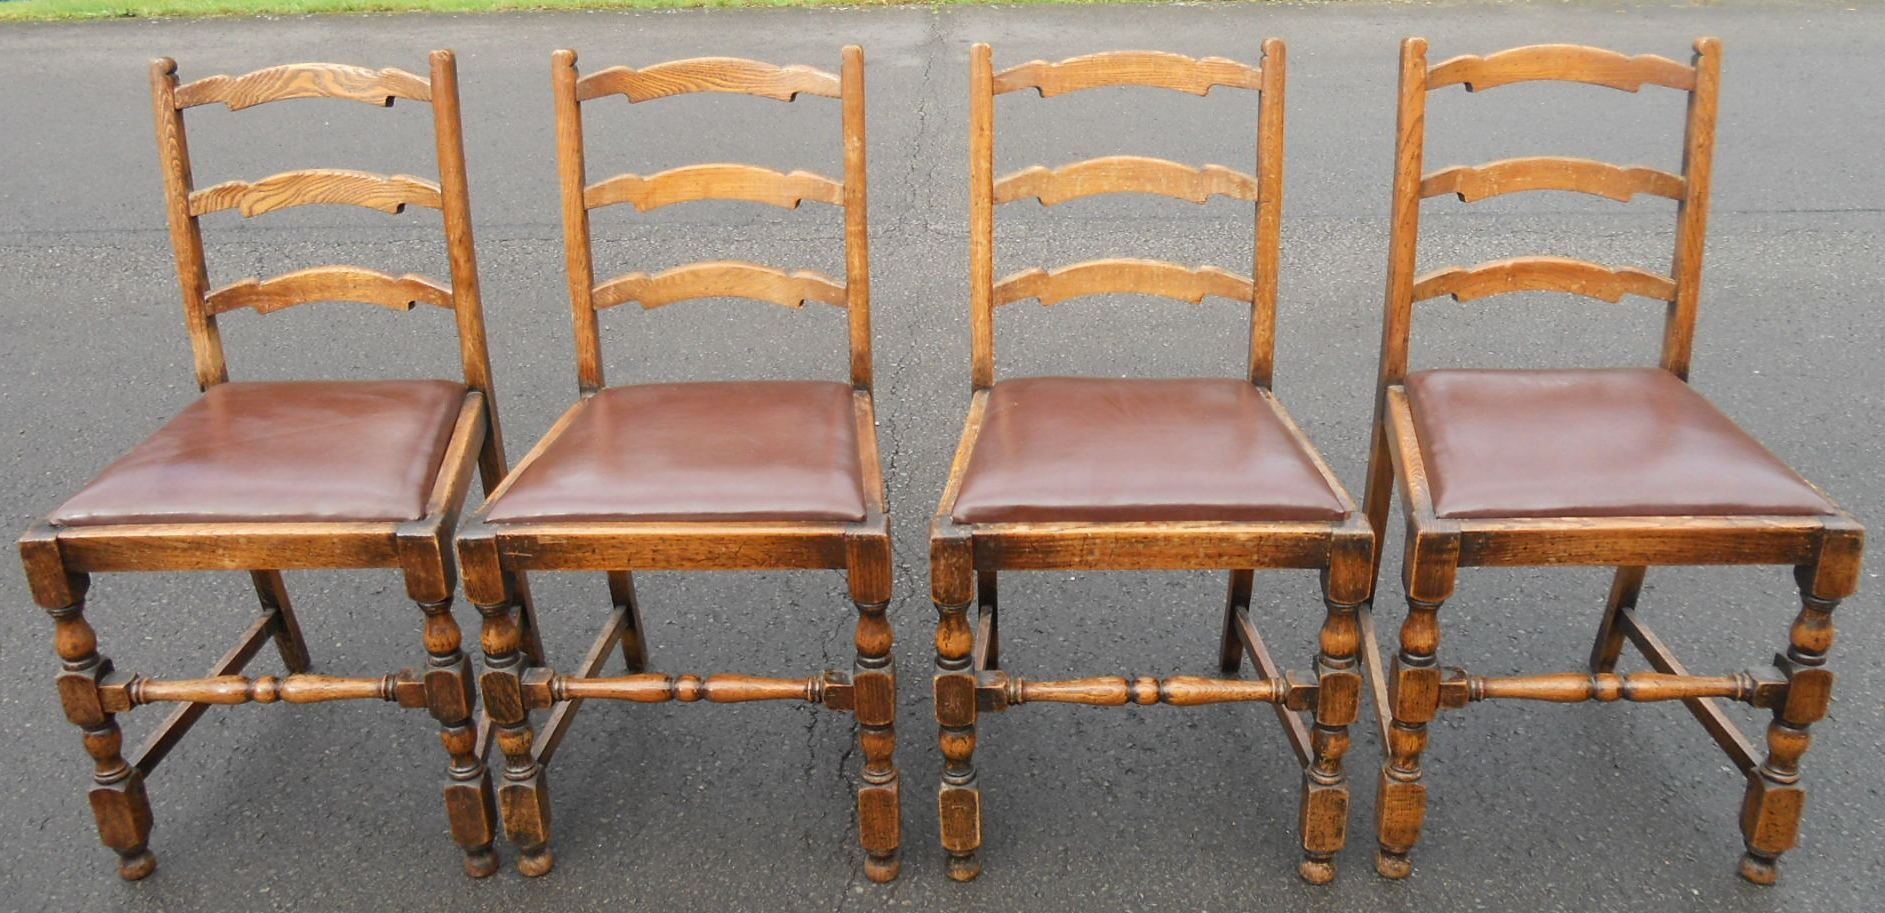 antique ladder back chairs uk cushion for office chair set of four oak ladderback dining